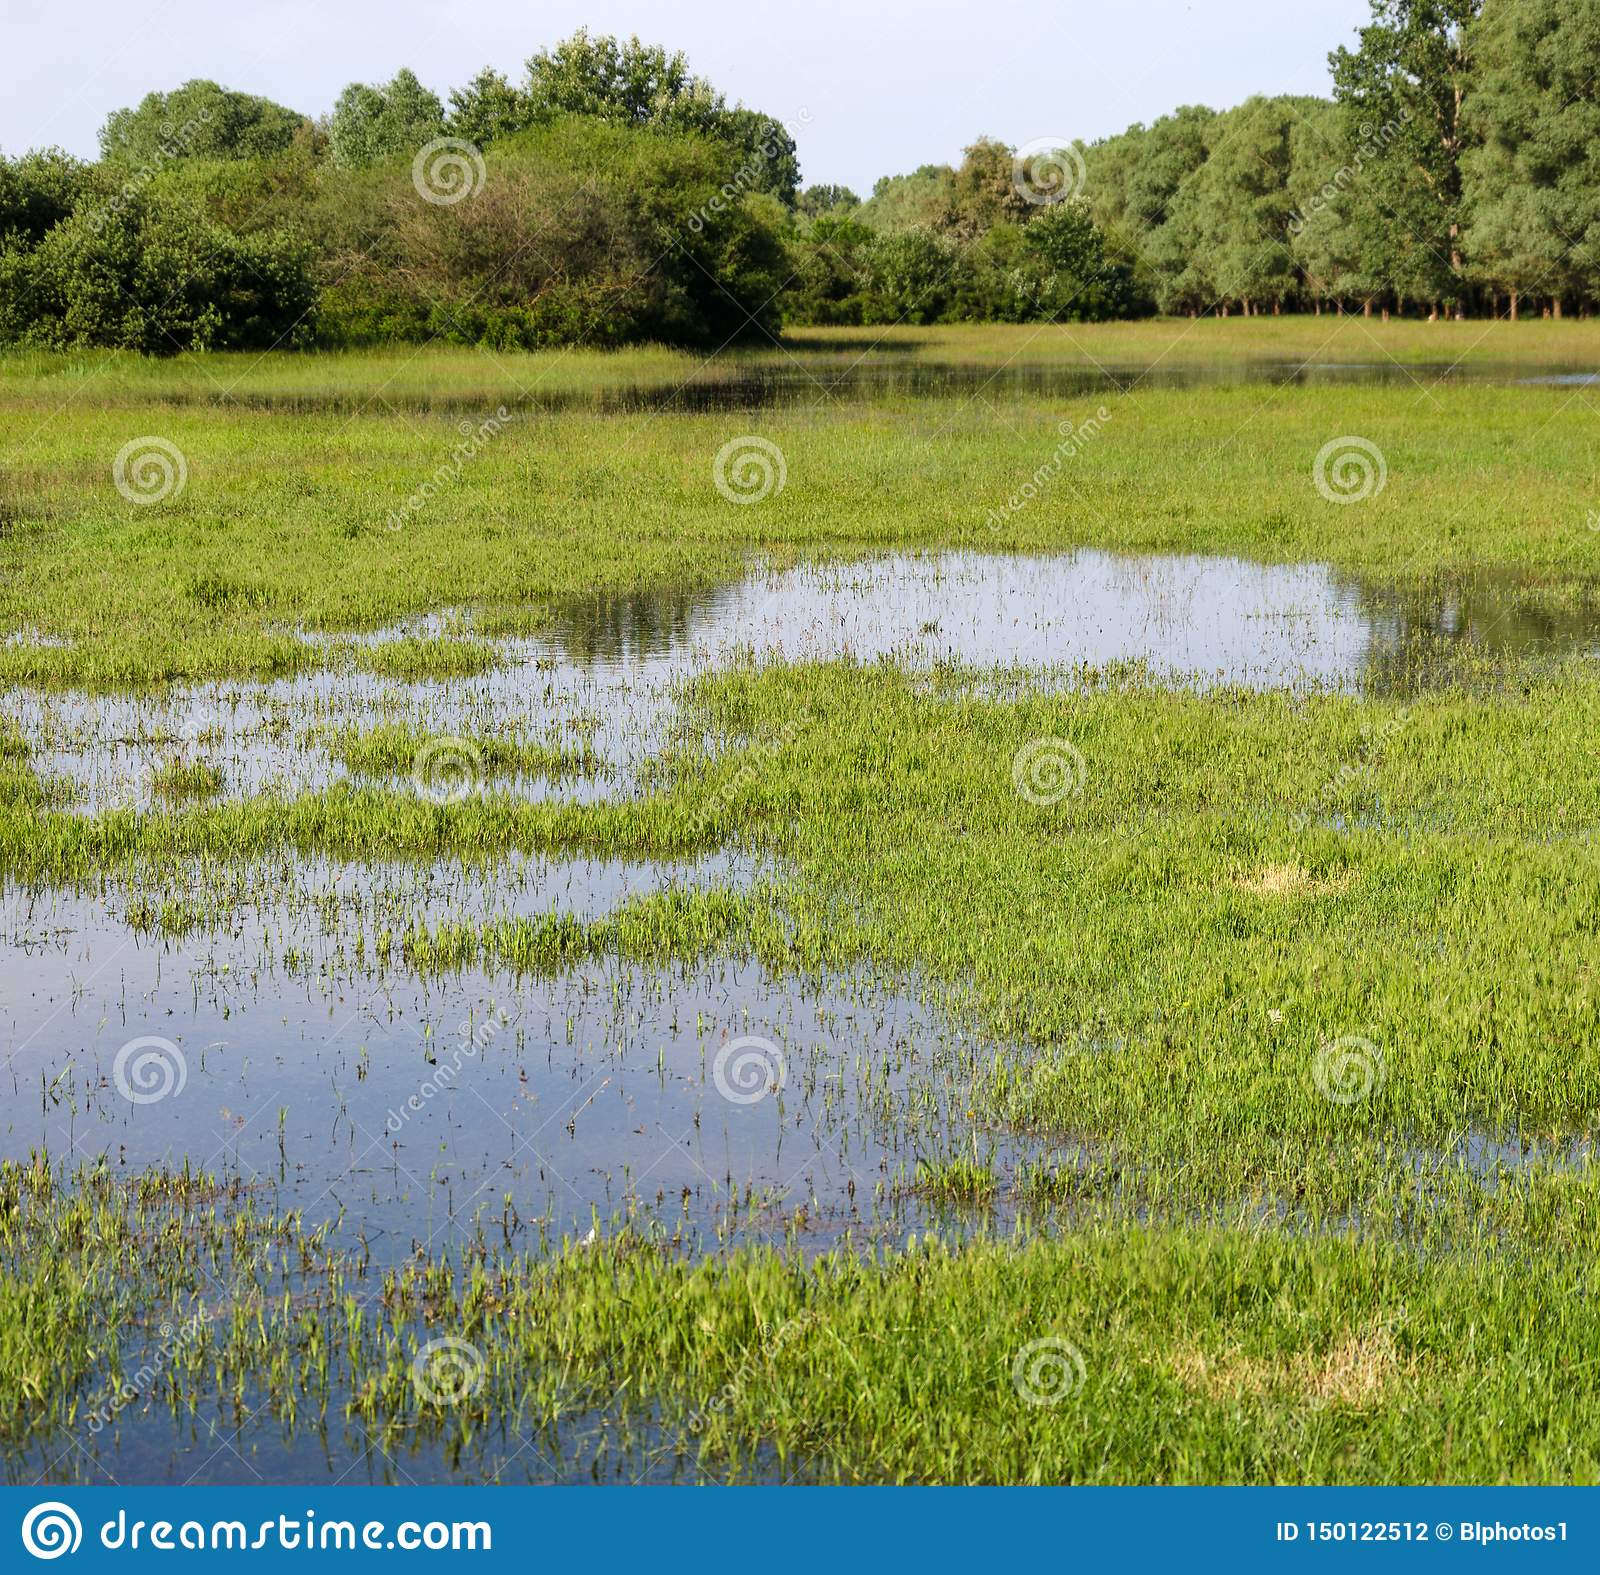 Spring flooding. Flood basin of the Tisza River in Tiszalok, Hungary. Hungarian countryside. Overflow of water from the river.